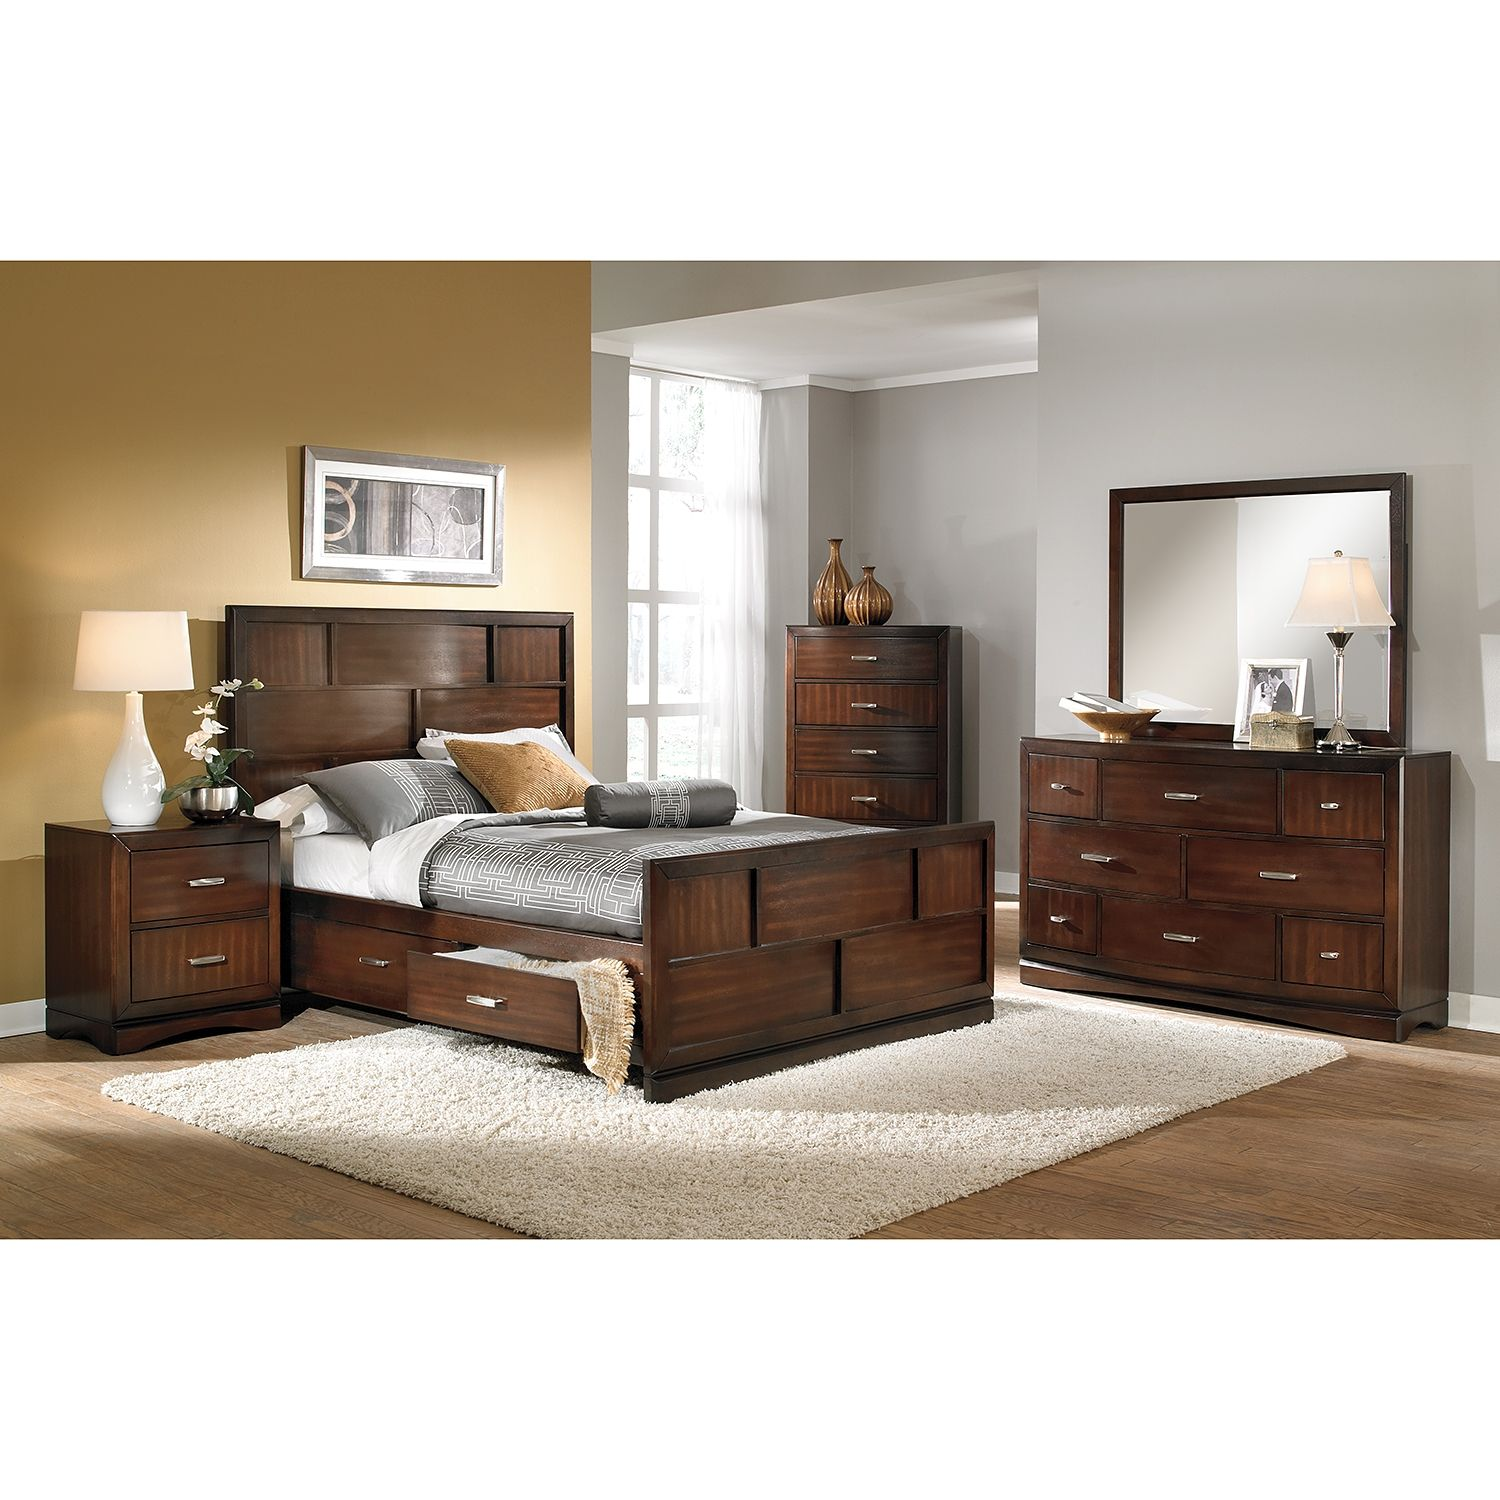 Toronto Dresser and Mirror (With images)  Bedroom furniture sets